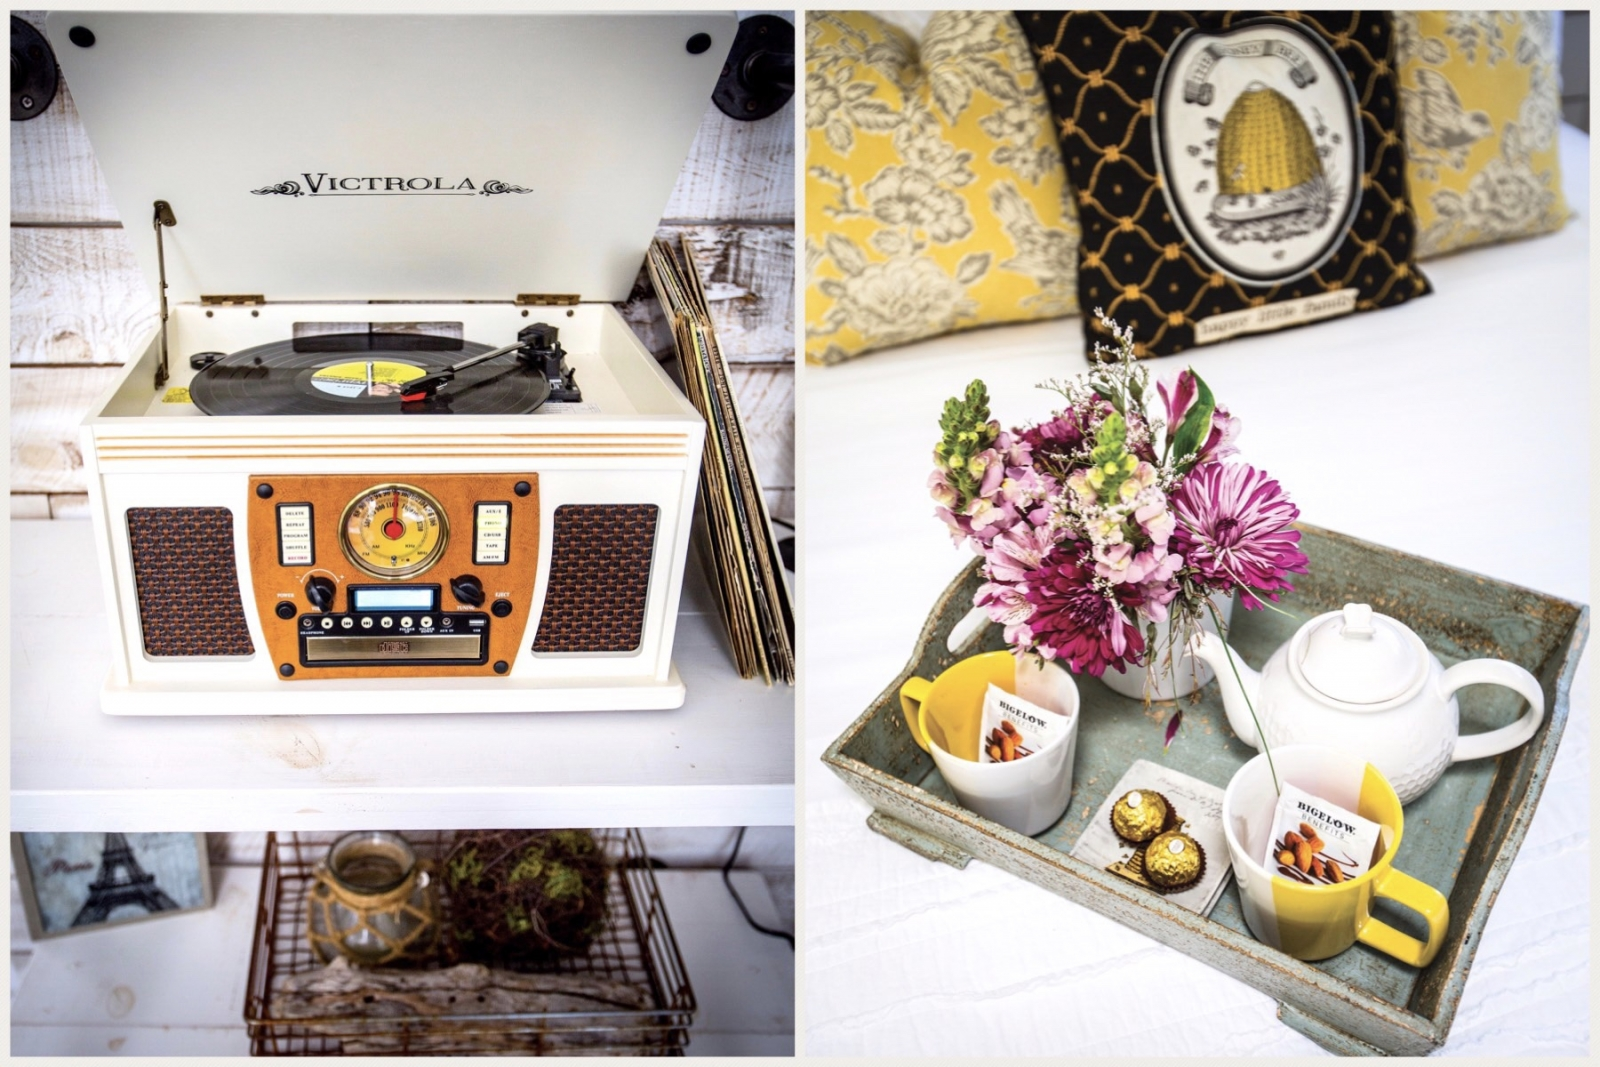 From left: Put a Frank Sinatra record on the vintage-style Victrola turntable; a rustic welcome tray with chocolate-almond herbal tea and flowers from Auburn-based mobile florist Pistil Annie